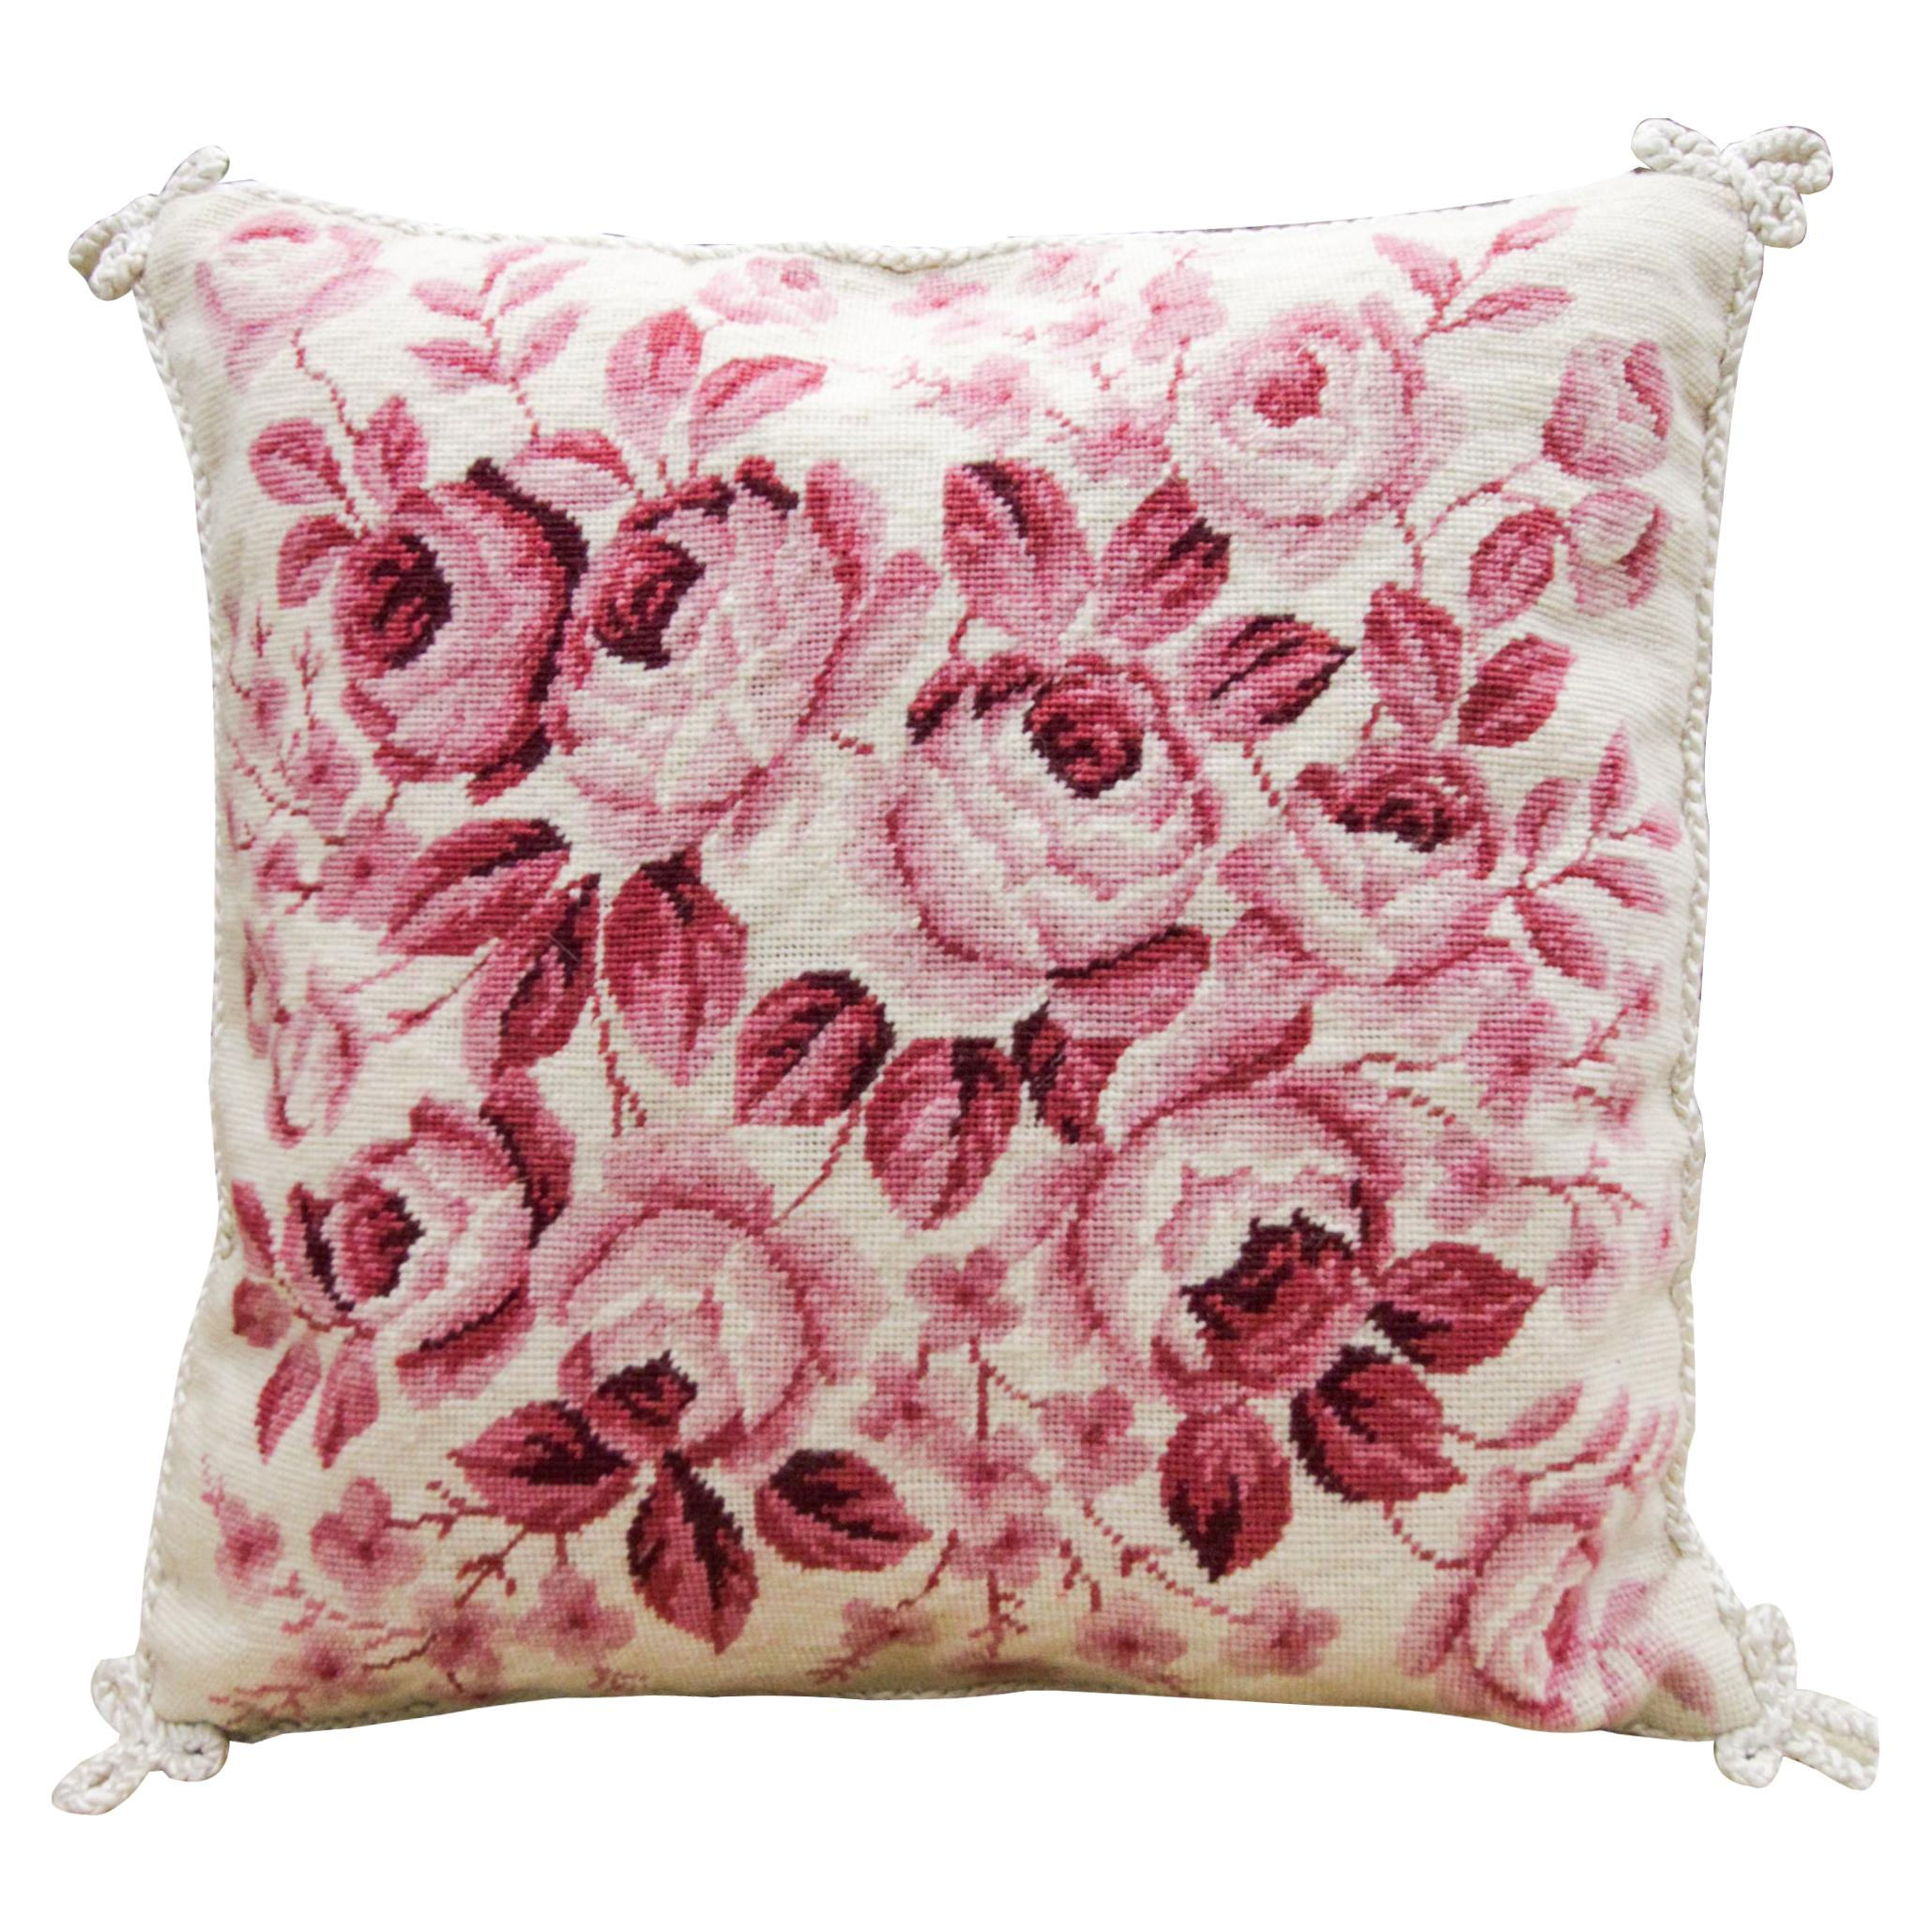 Floral Cushion Cover Hand Embroidered Pillow Case Pink Wool Scatter Cushion